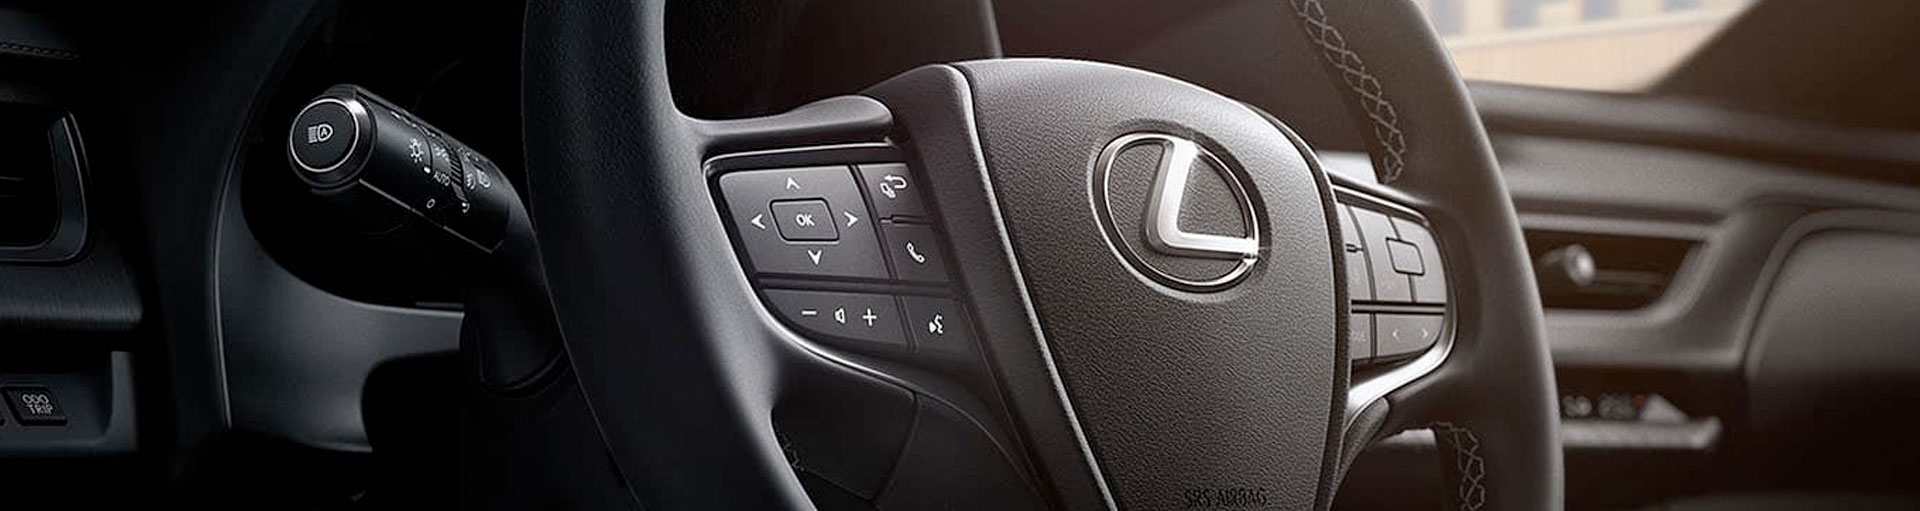 Lexus of Calgary Filter Replacement Services